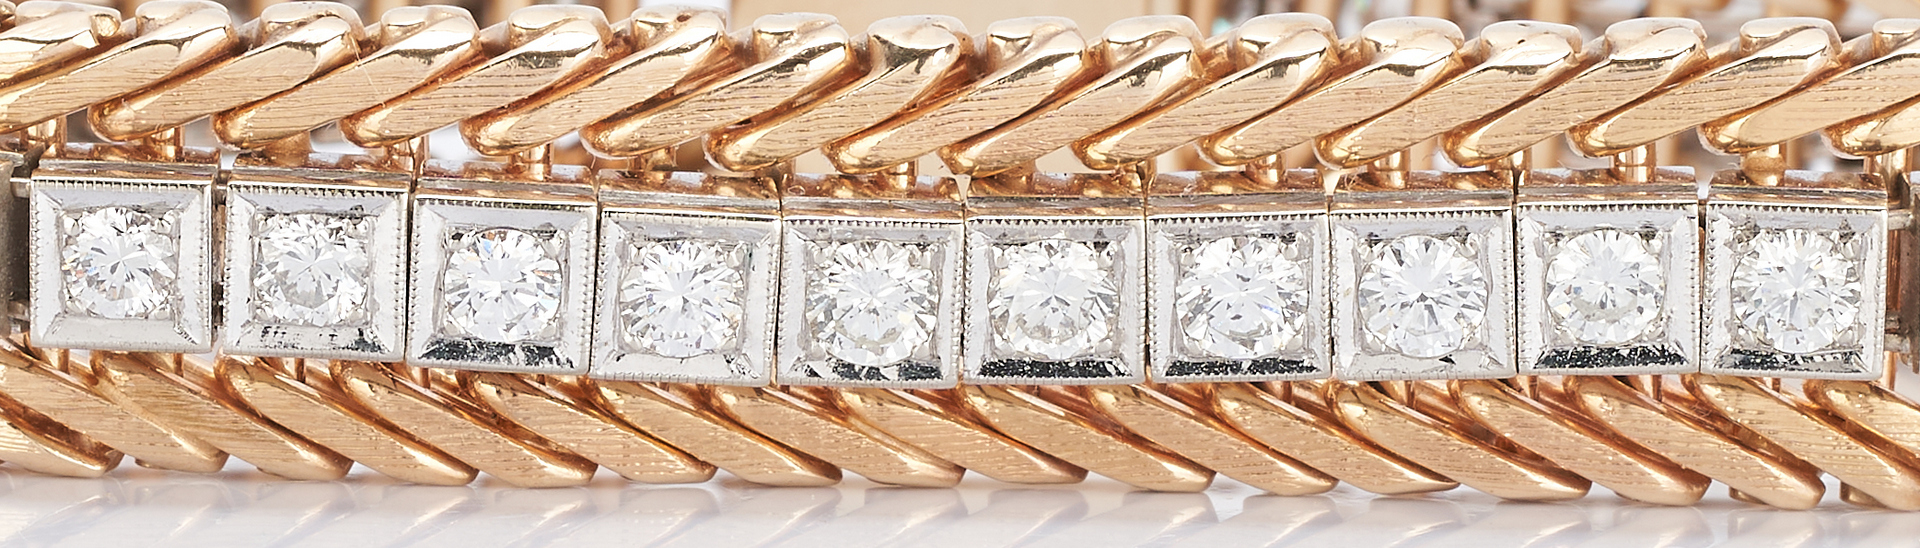 Lot 33: 14K Gold and Diamond Tennis Bracelet